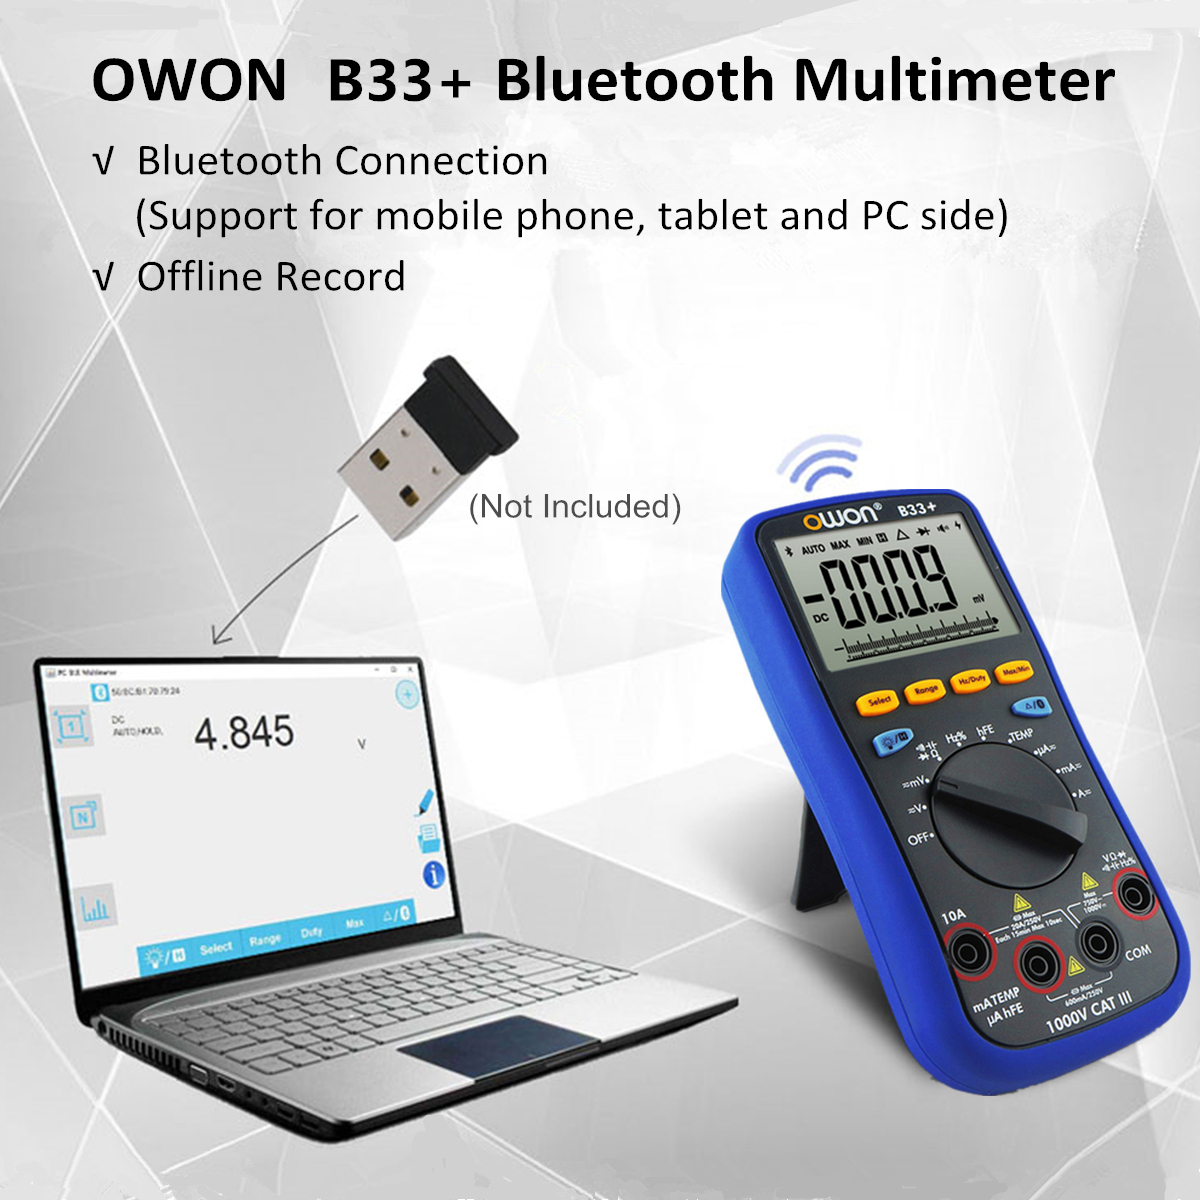 OWON B33+ Digital bluetooth Multimeter AC DC Voltage Current Resistance Capacitance Temperature Tester Offline Record for Android 4.3 IOS 7.0